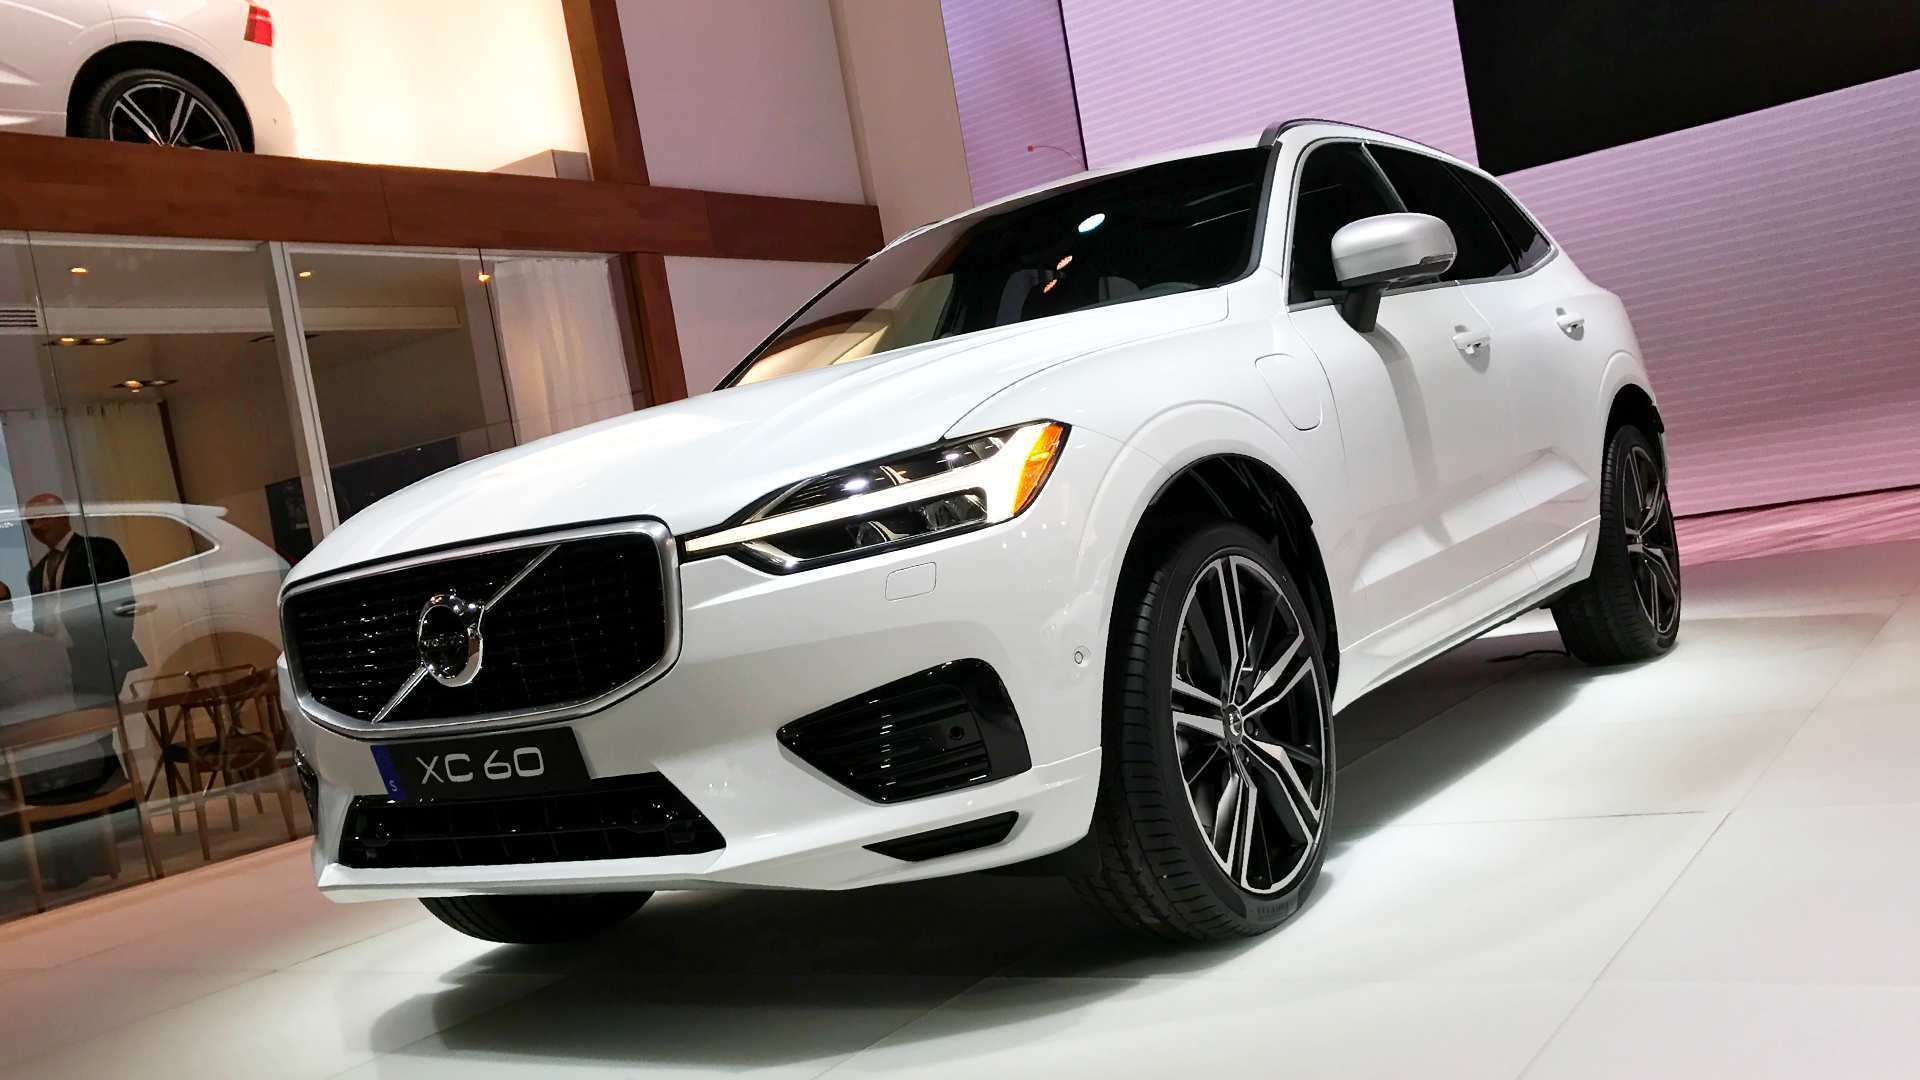 94 The Best Volvo 2019 Xc60 Review Exterior Interior with Best Volvo 2019 Xc60 Review Exterior